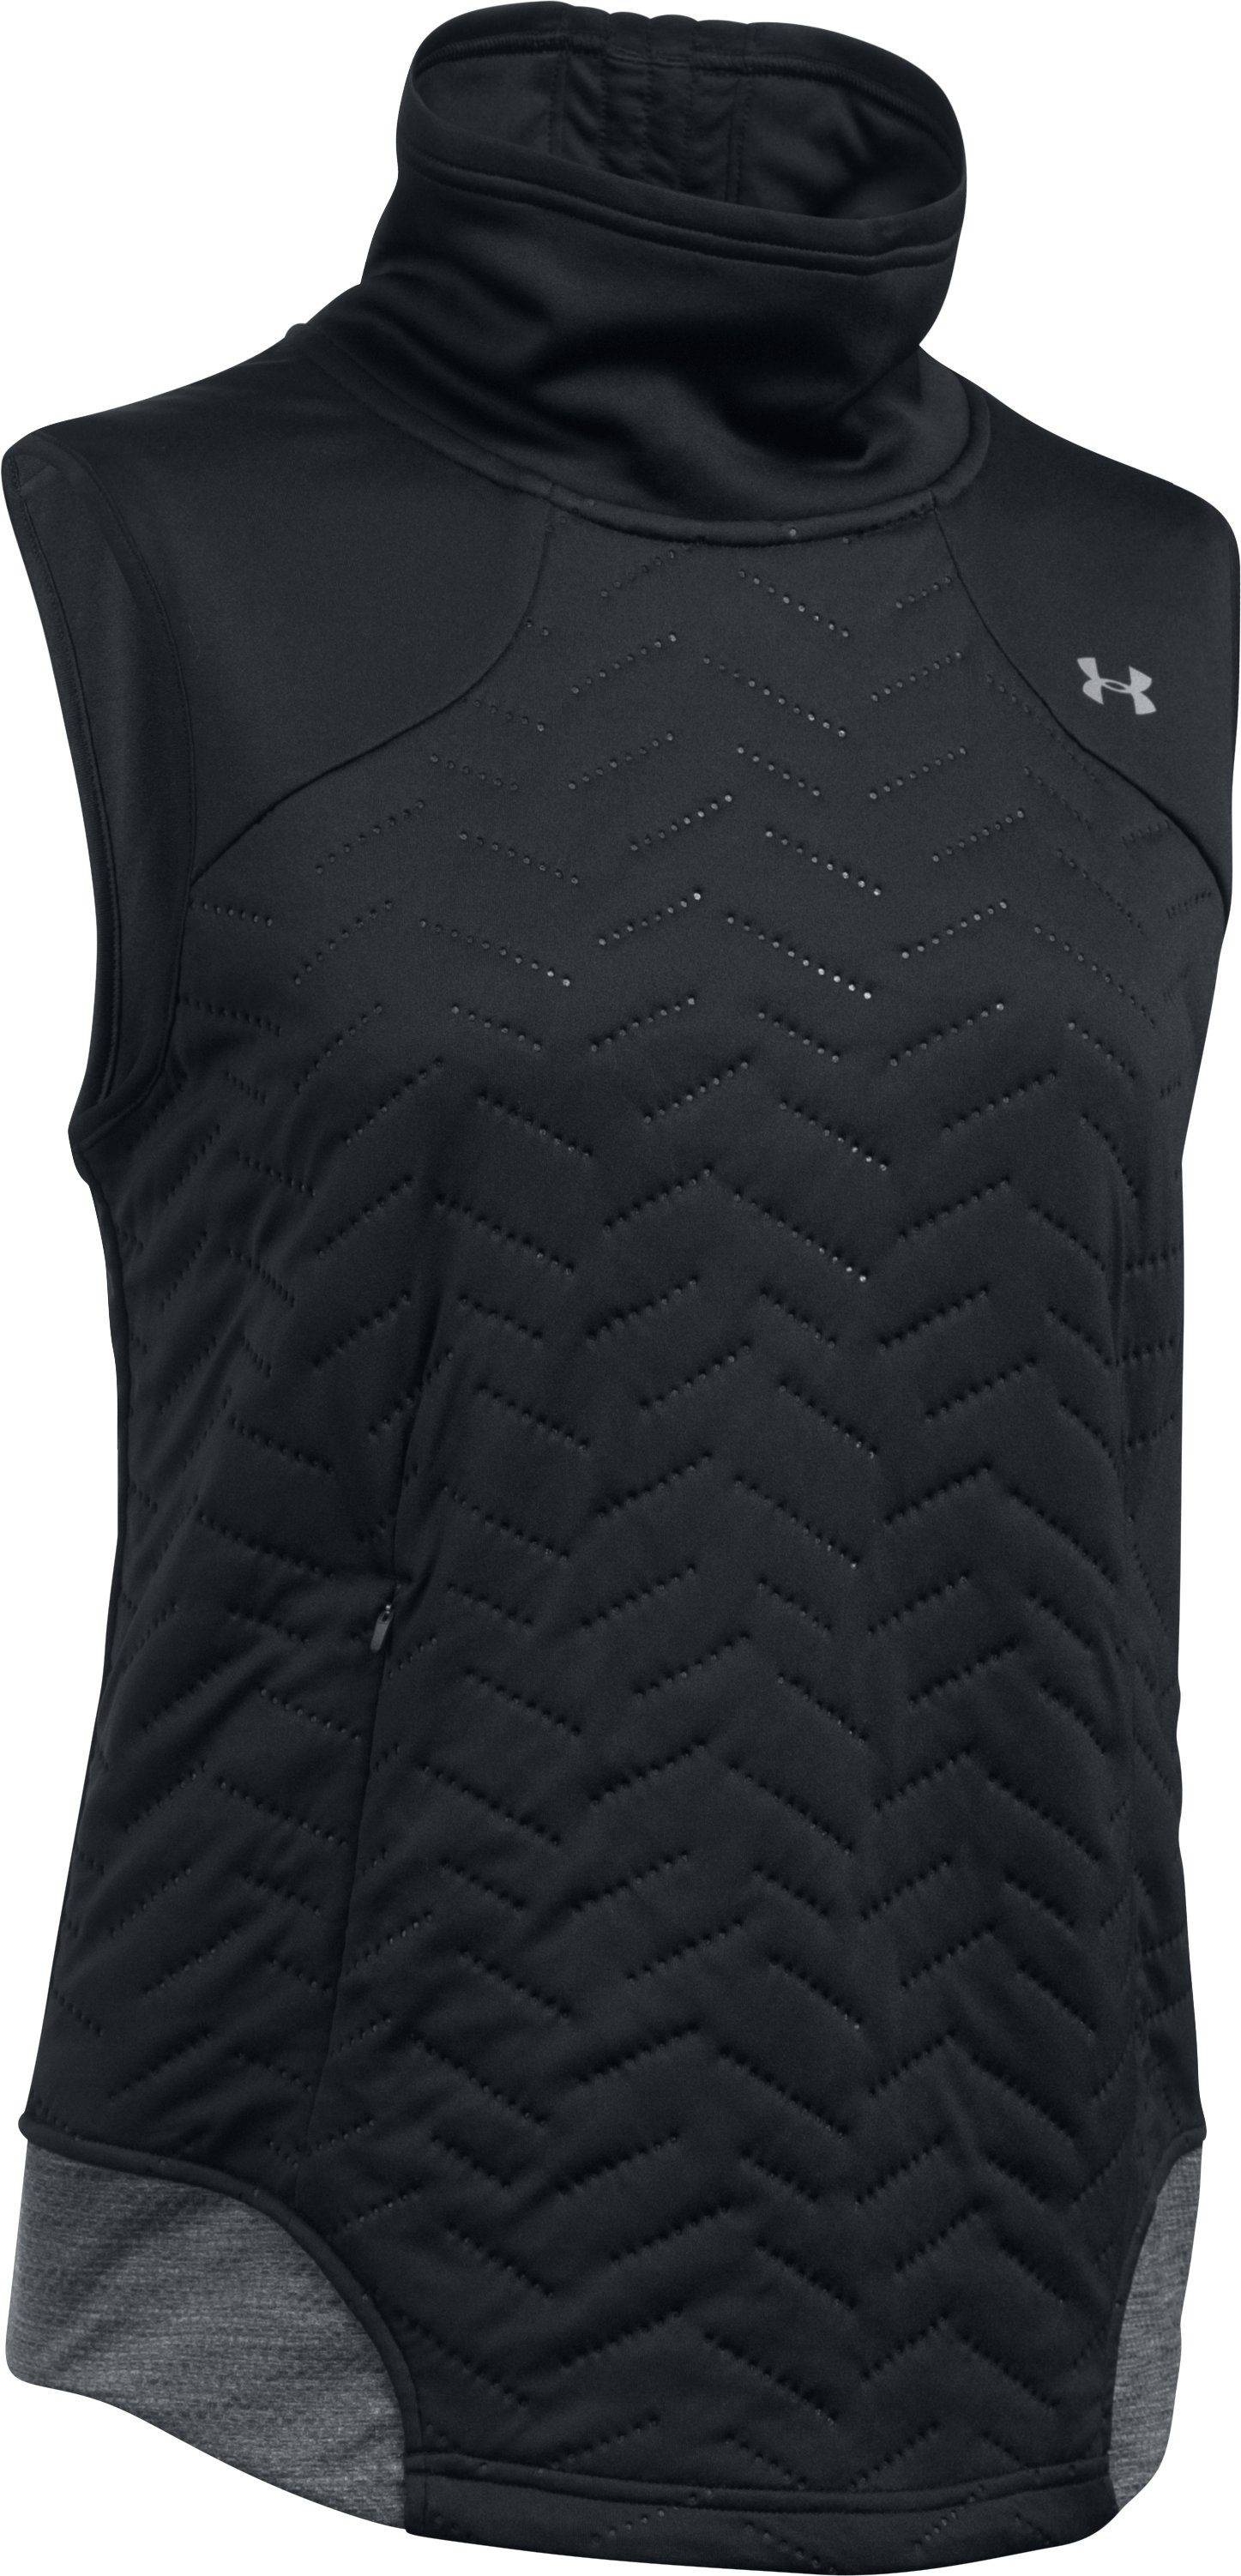 Women's ColdGear® Reactor Exert Vest, Black , undefined